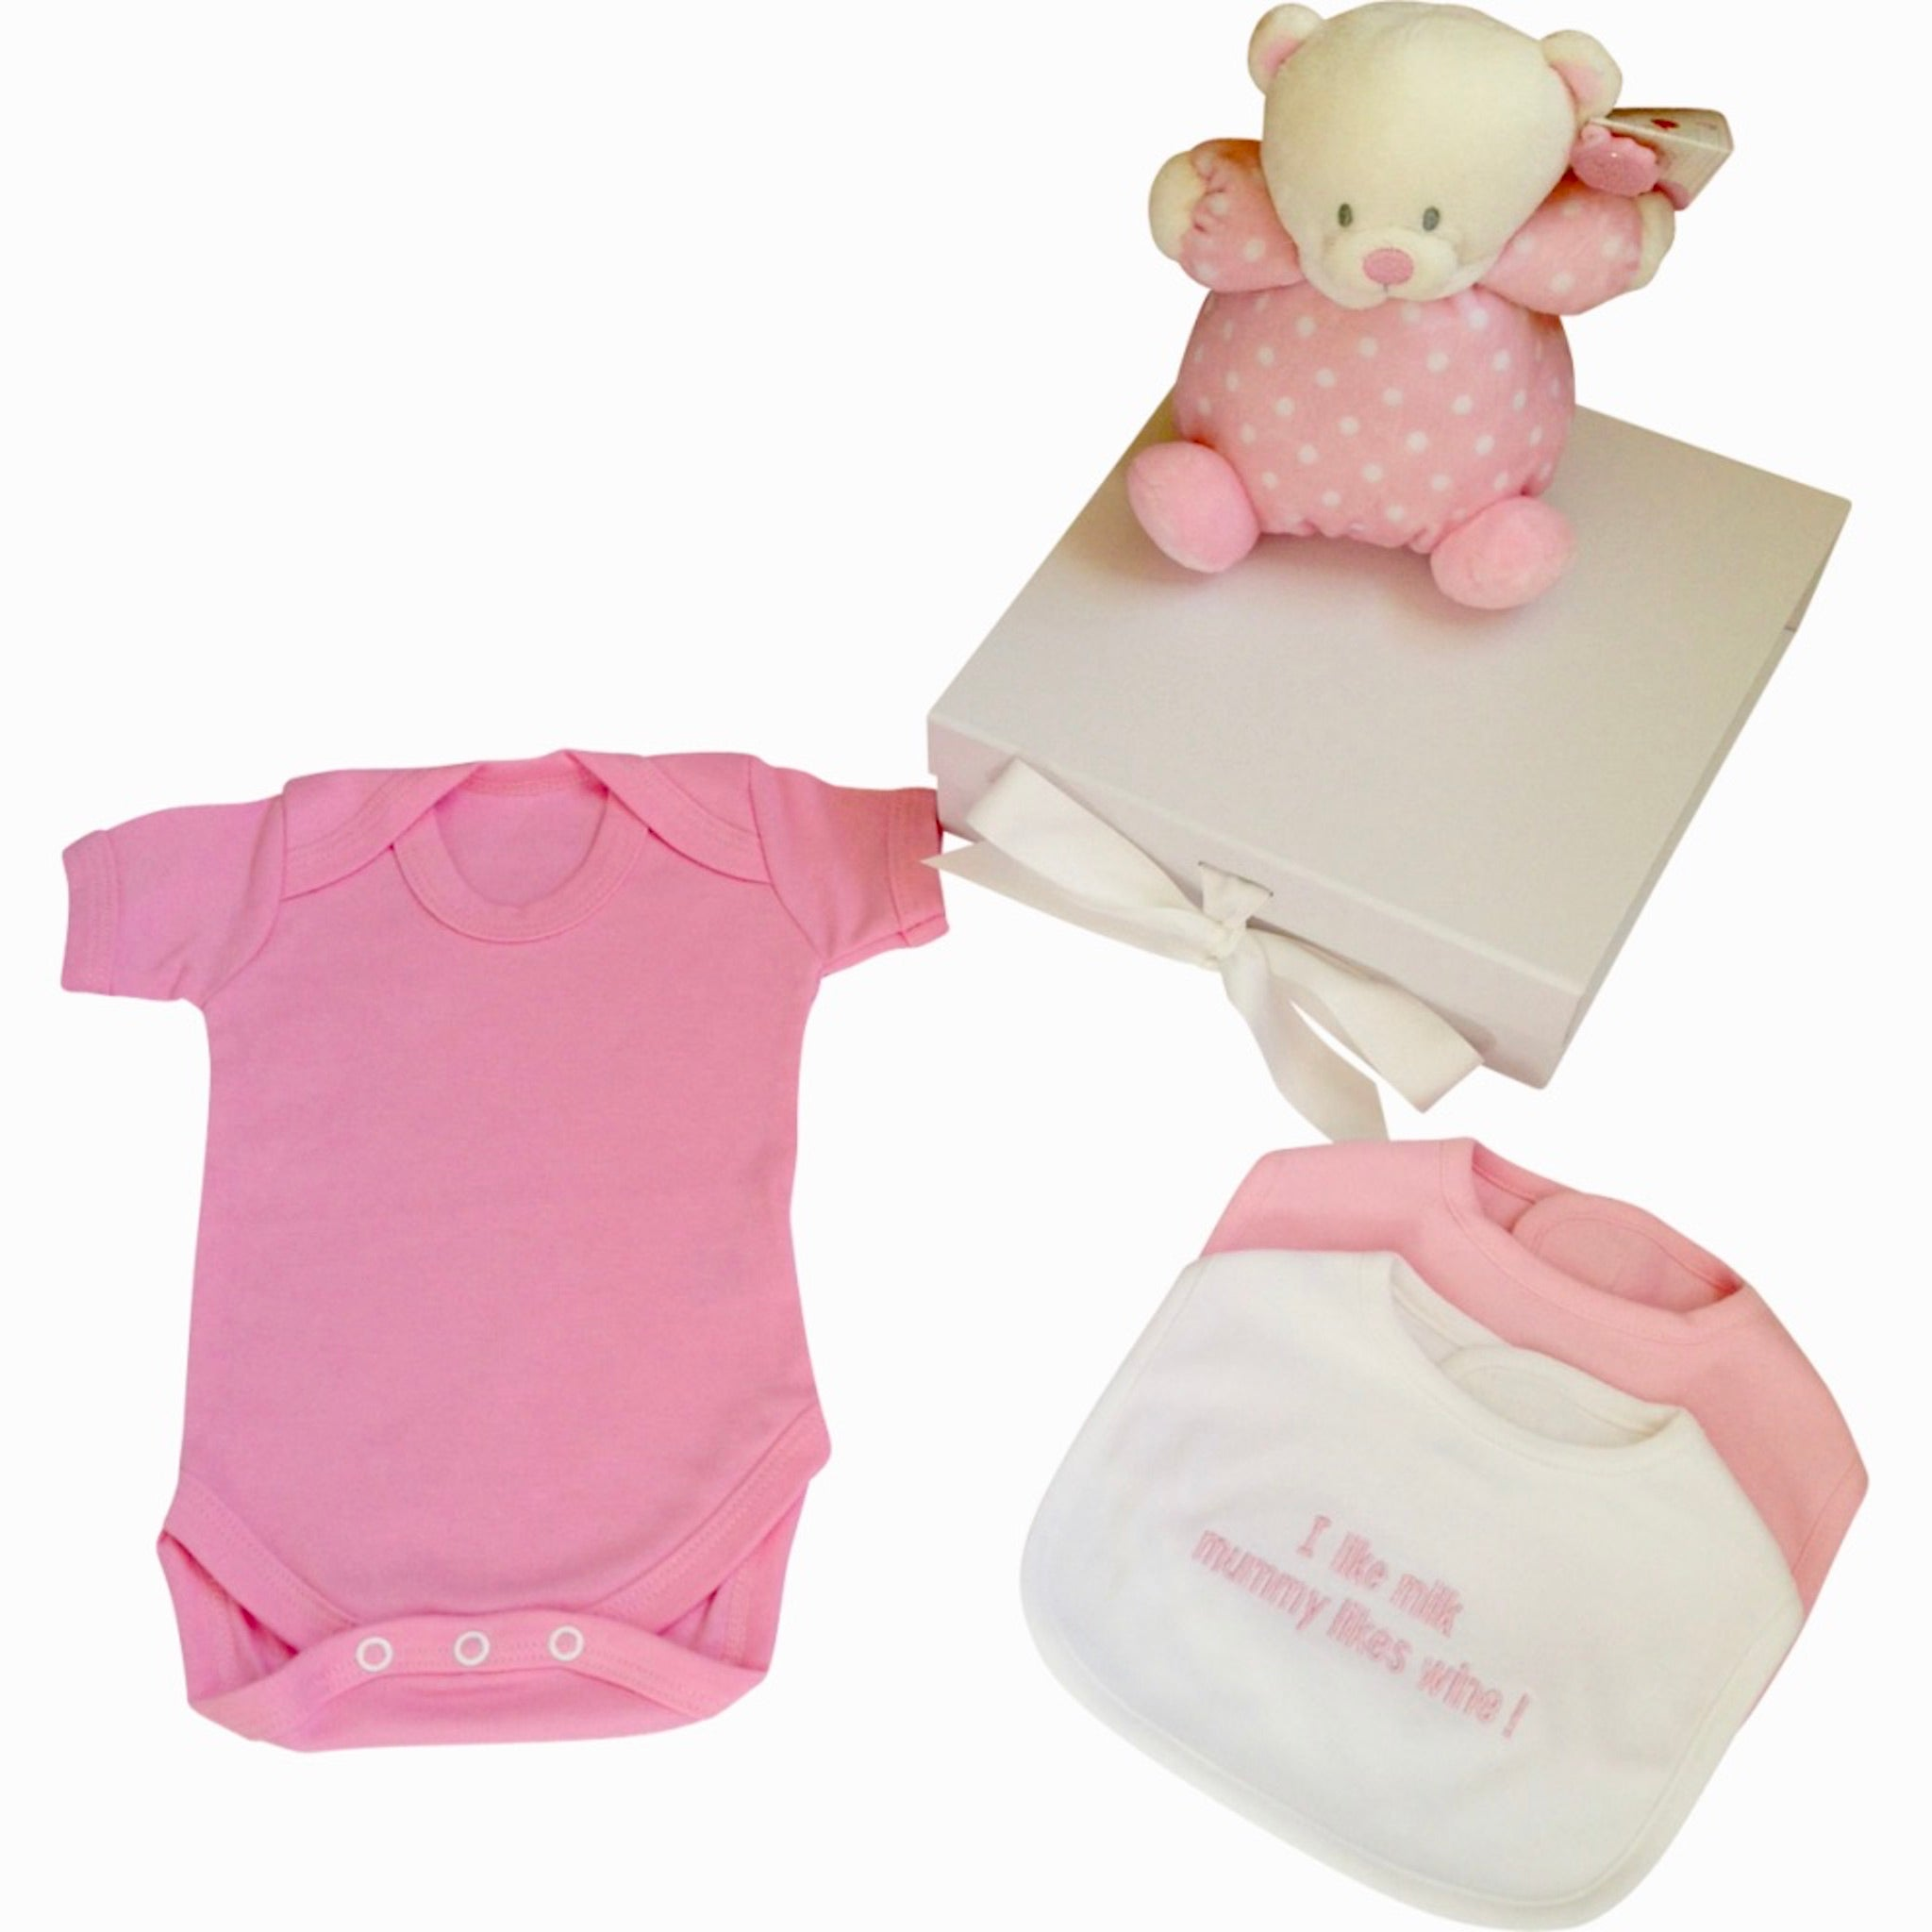 7e43d51ad07 Puffball baby bear baby girl gift box with slogan bibs